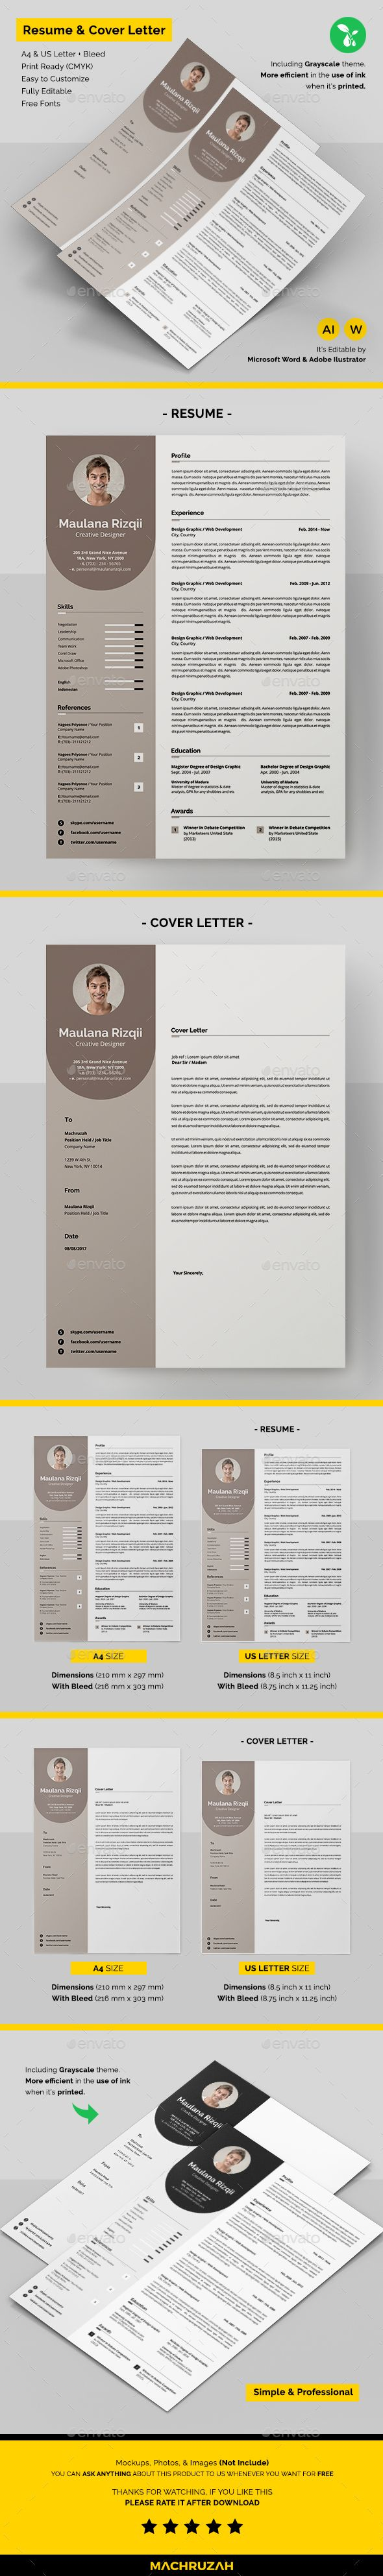 Resume #modern resume #resume infographic  • Download here → https://graphicriver.net/item/resume/20702513?ref=pxcr